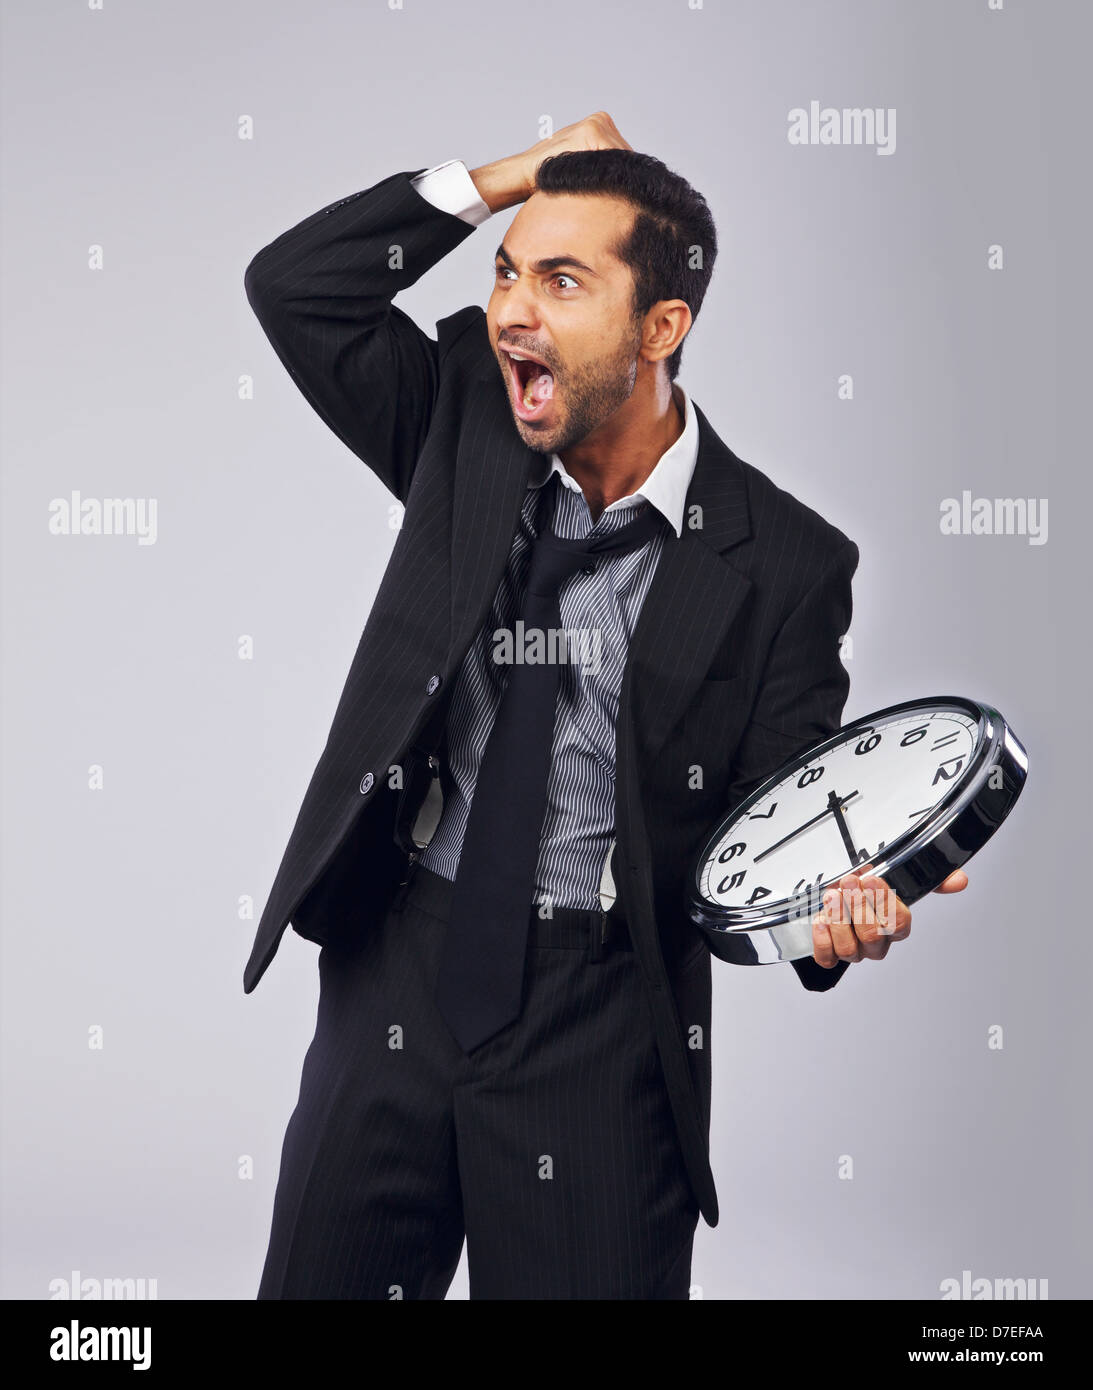 Businessman in panic for not meeting the deadline - Stock Image